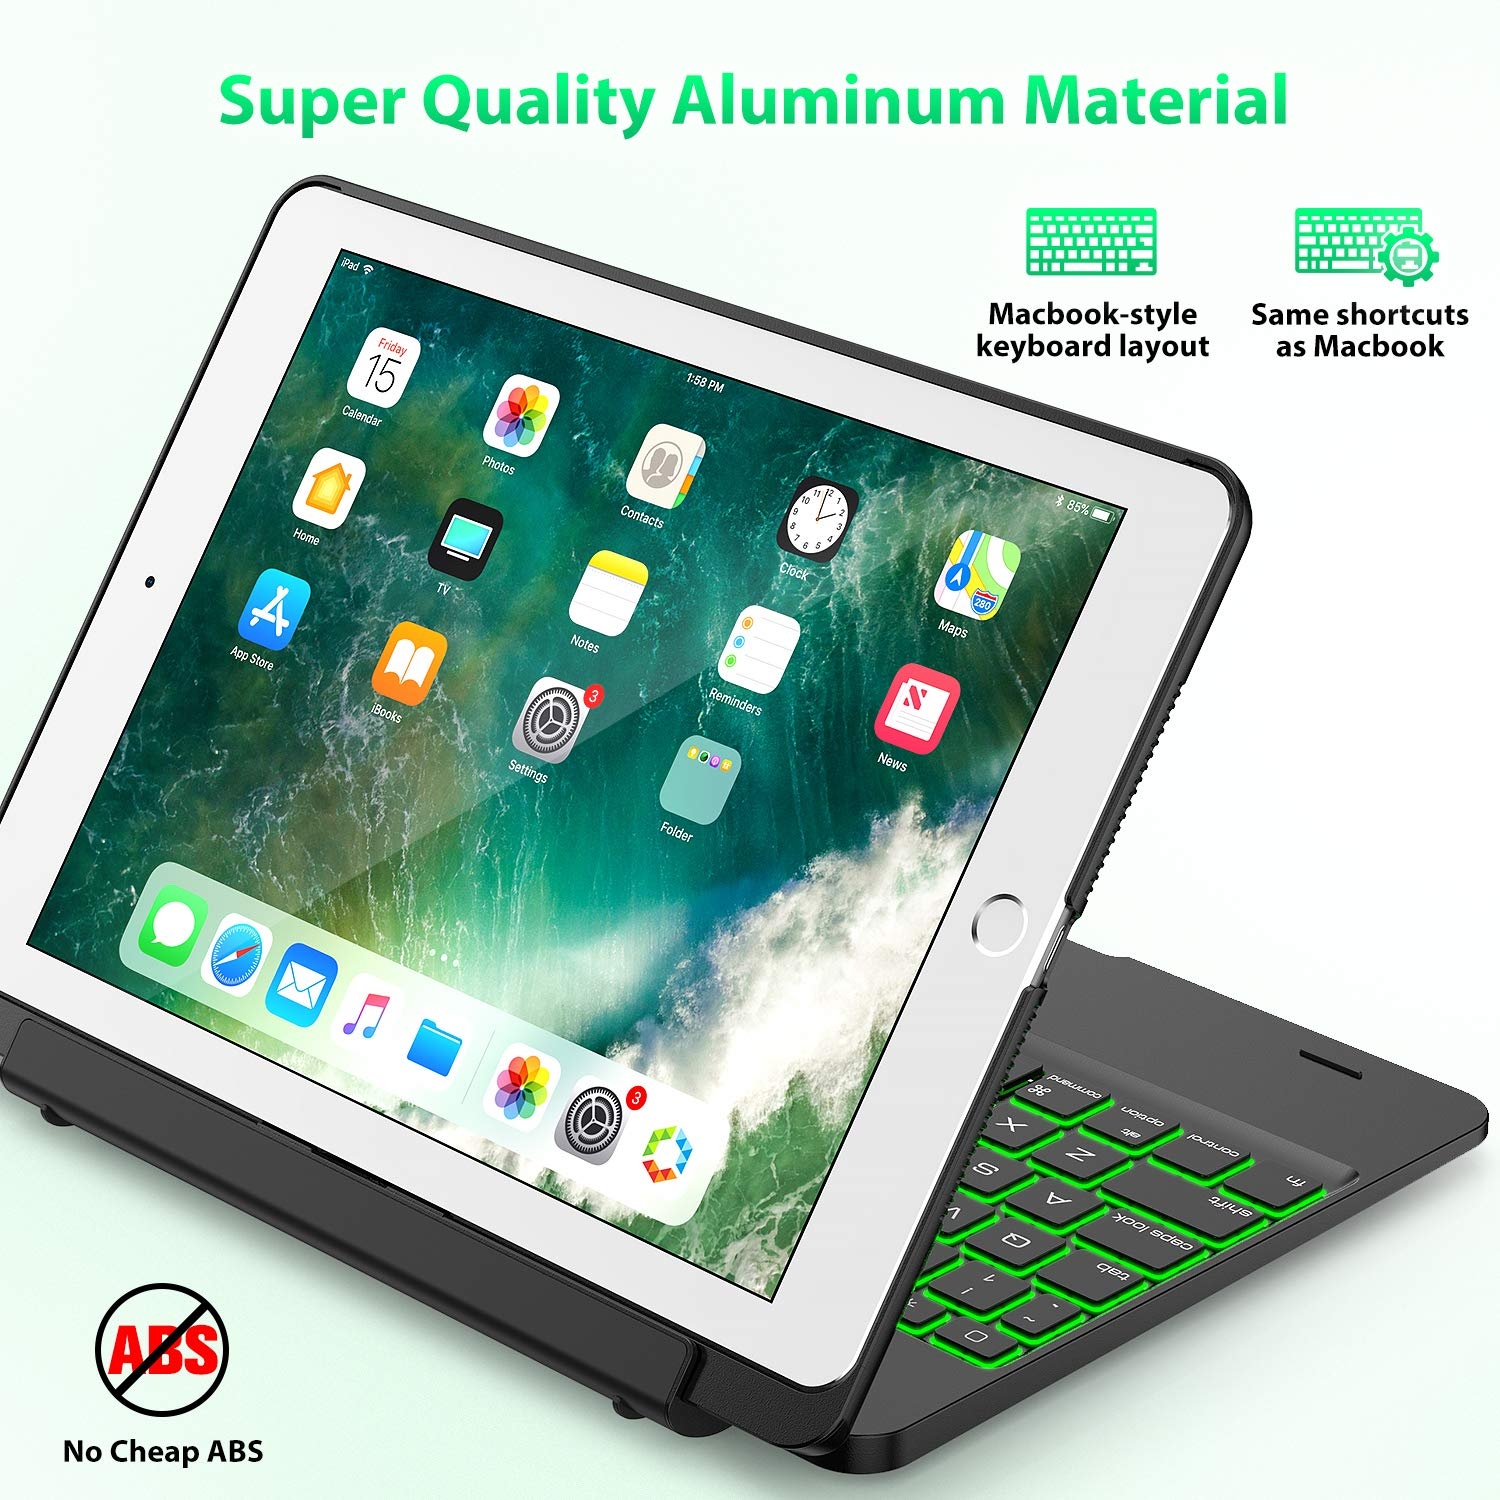 Keyboard Case Compatible with iPad 2018 (6th Gen), iPad 2017 (5th Gen), iPad Pro 9.7,'' and iPad Air 1 and 2 - Features Detachable Design, Rotating Hinge and Adjustable Backlight (Black) by Tezzionas (Image #4)